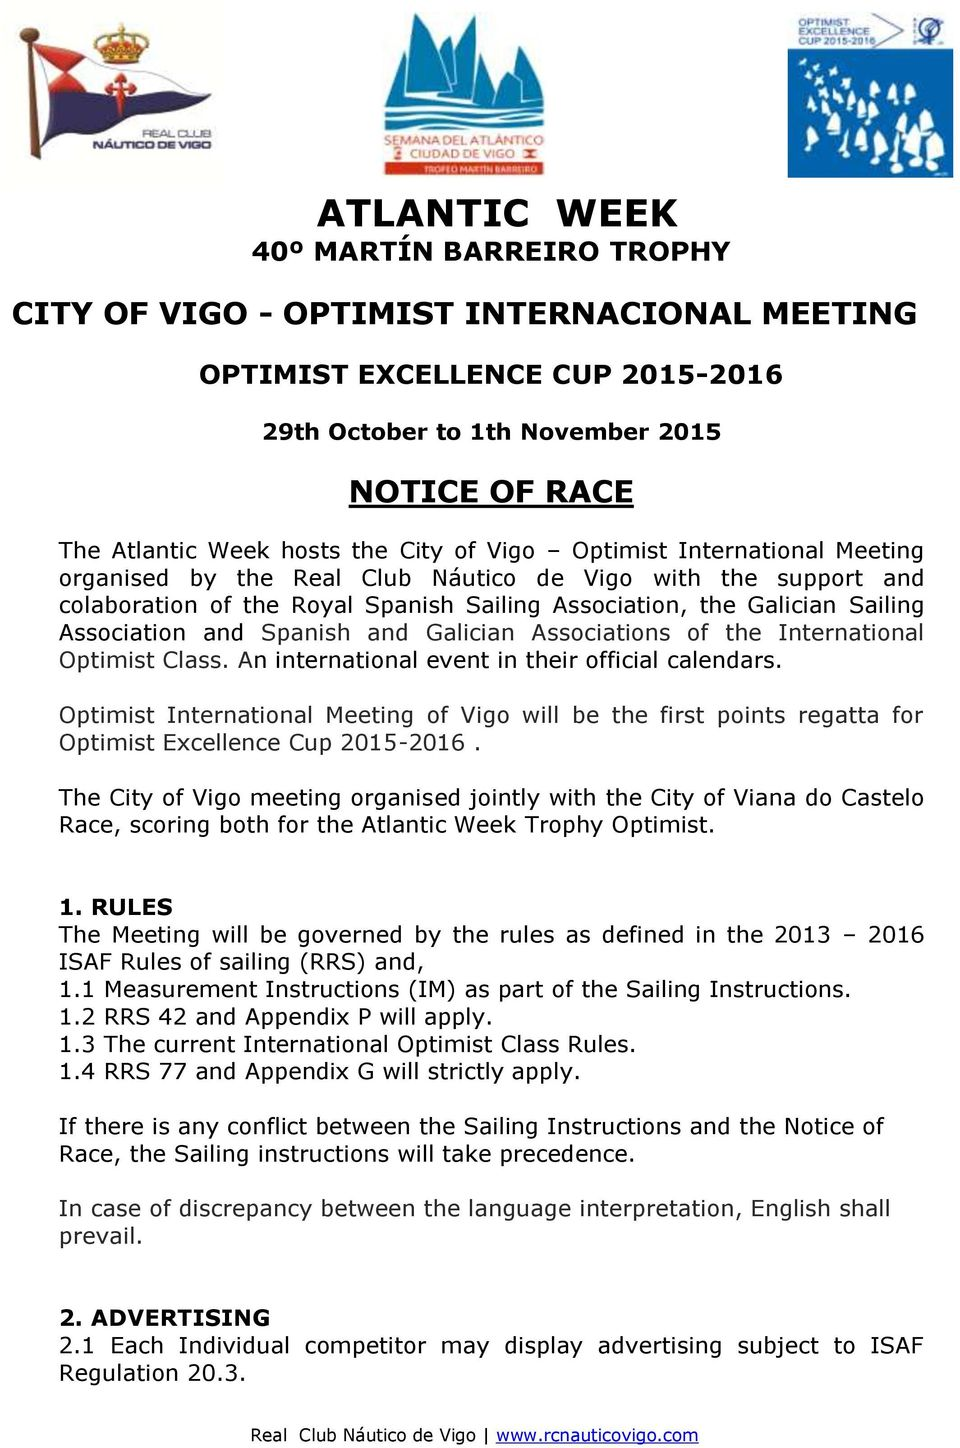 Spanish and Galician Associations of the International Optimist Class. An international event in their official calendars.